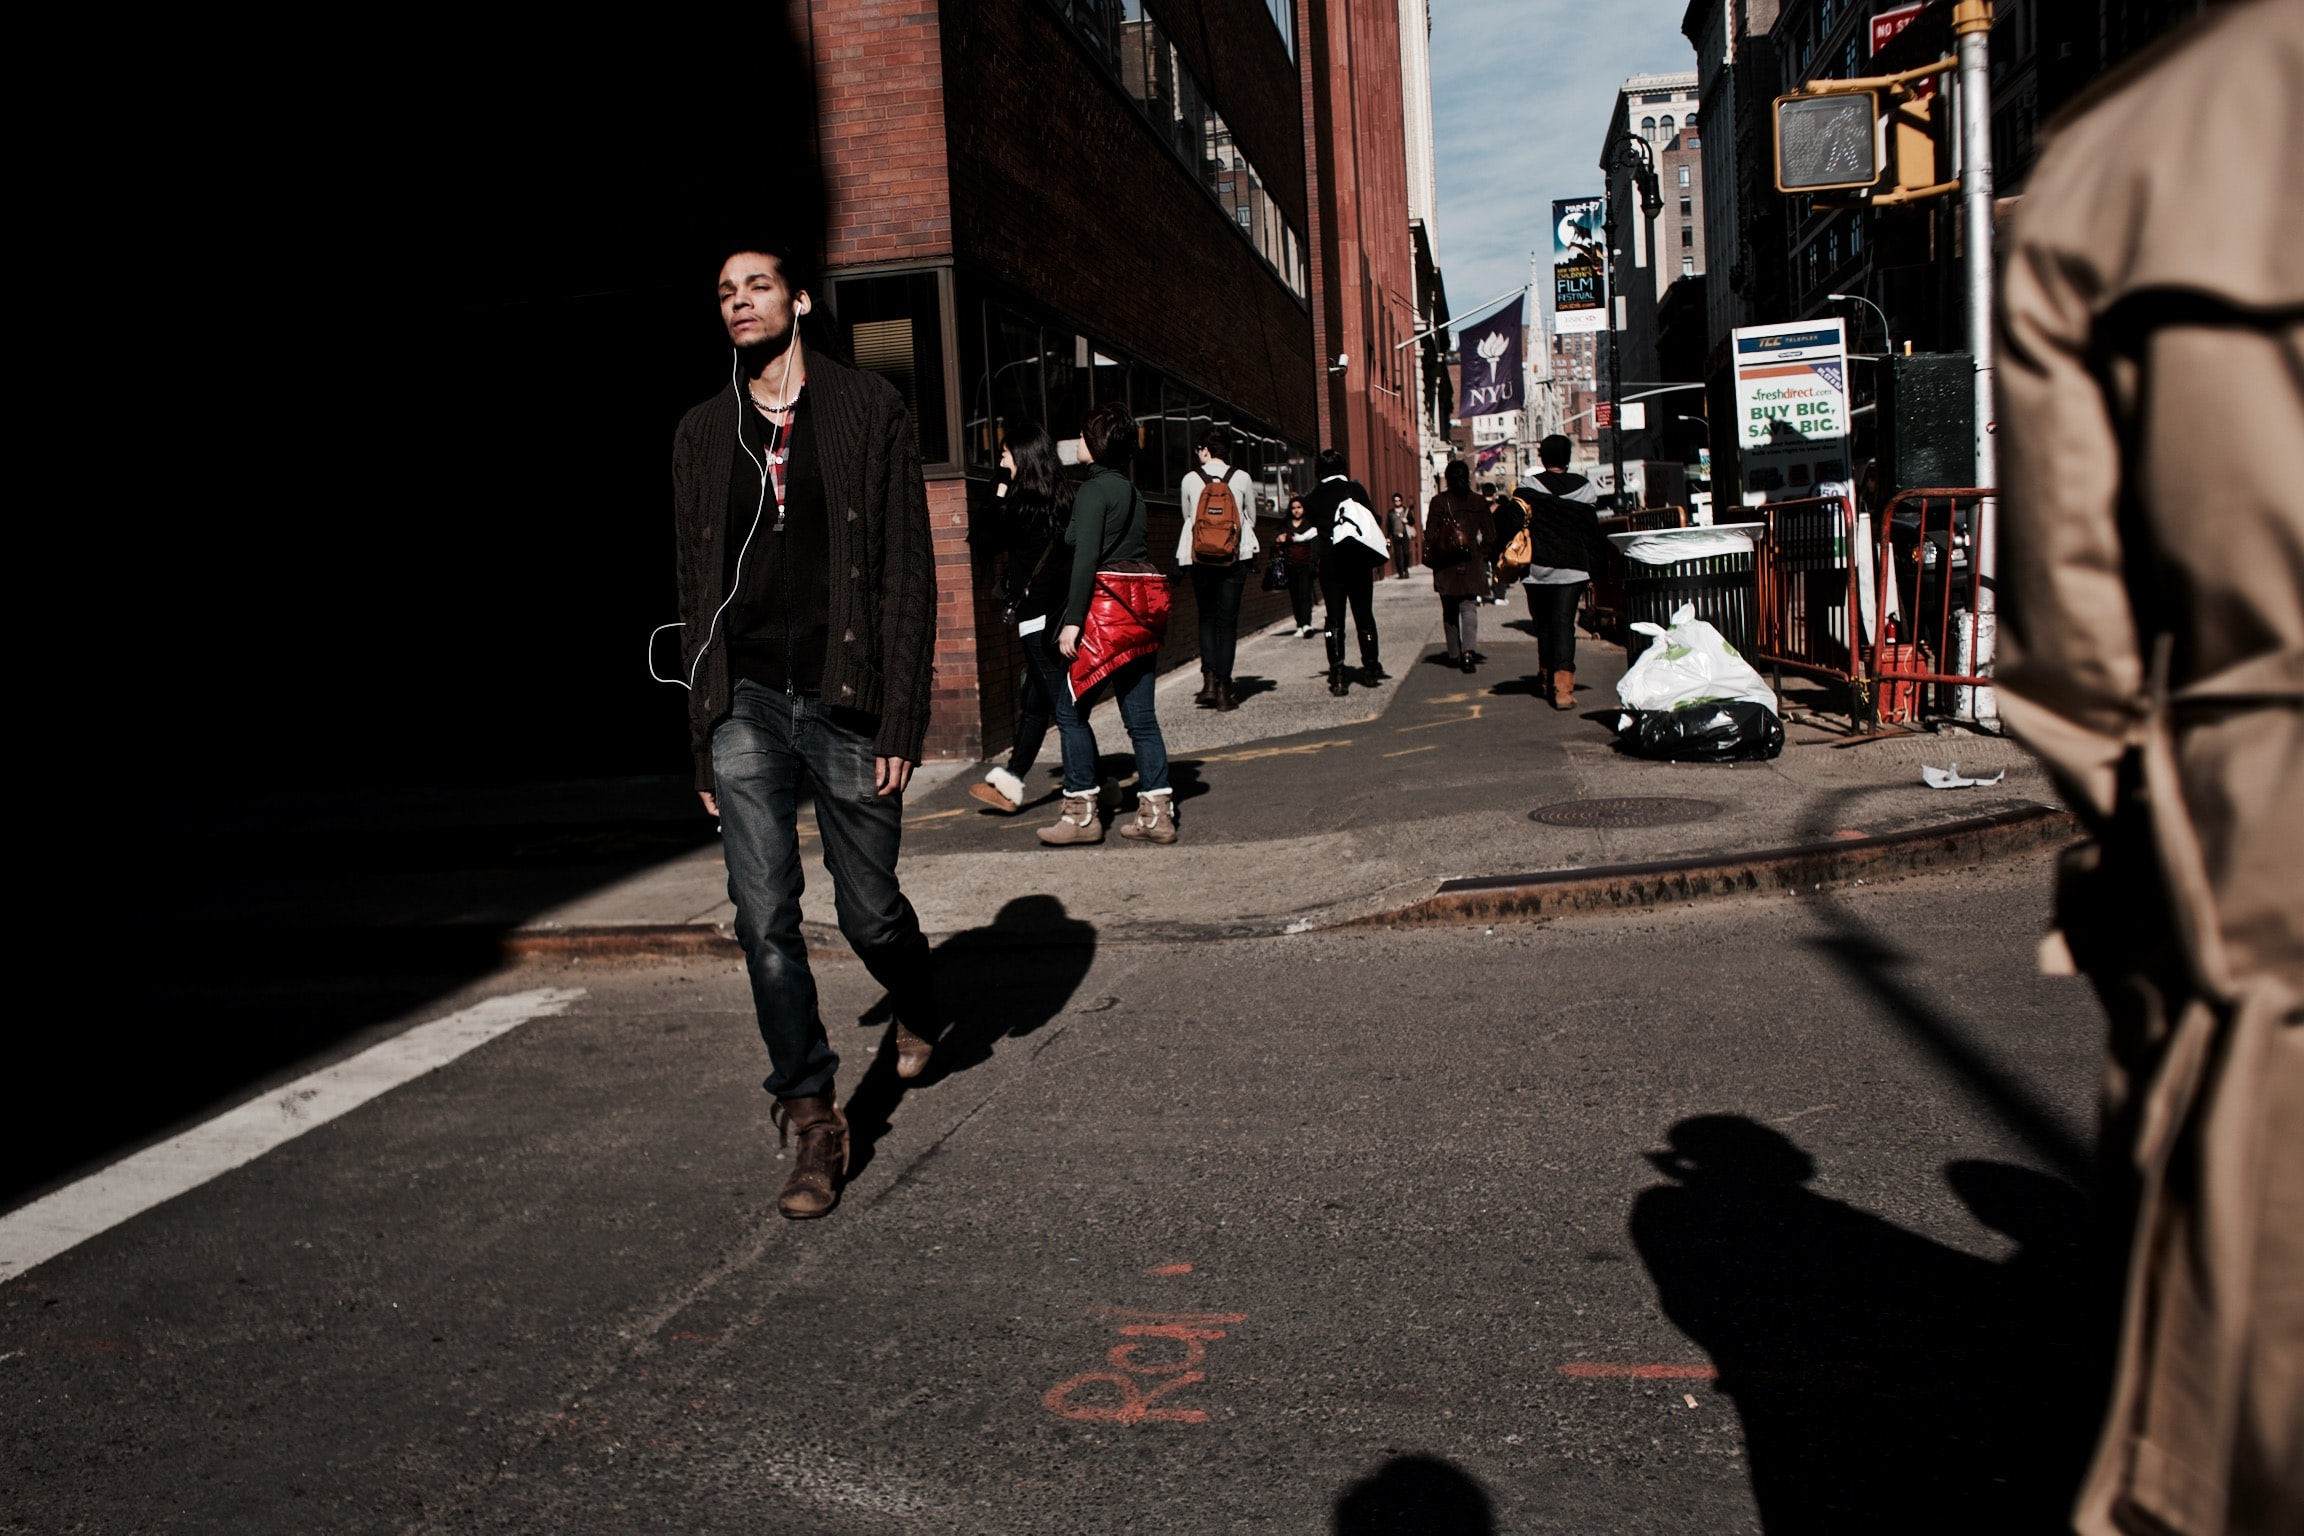 A young man walking down the street listening to music on white earphones